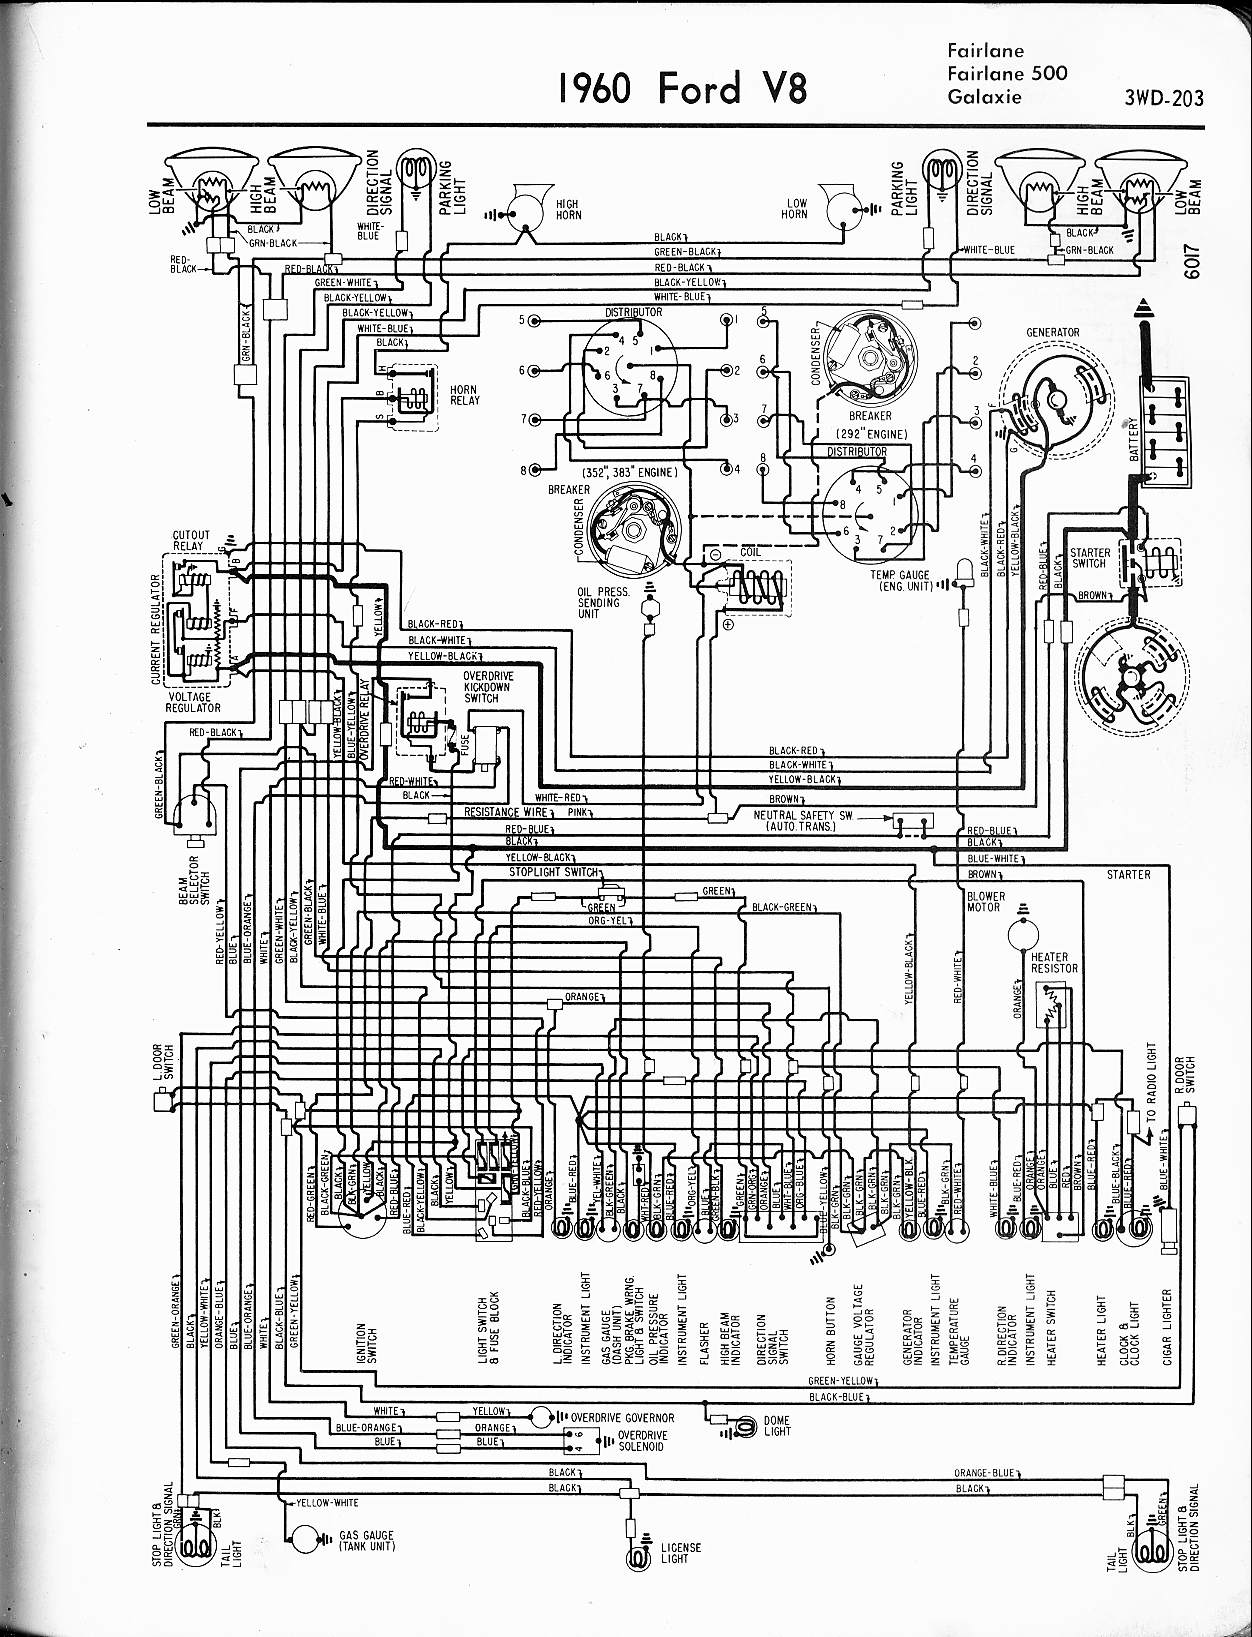 wiring diagram 1965 ford galaxie wiring schematic diagram 1969 Ford Custom 500 Wiring Diagram 57 65 ford wiring diagrams 1965 ford wiring schematic 1960 v8 fairlane, 500, galaxie